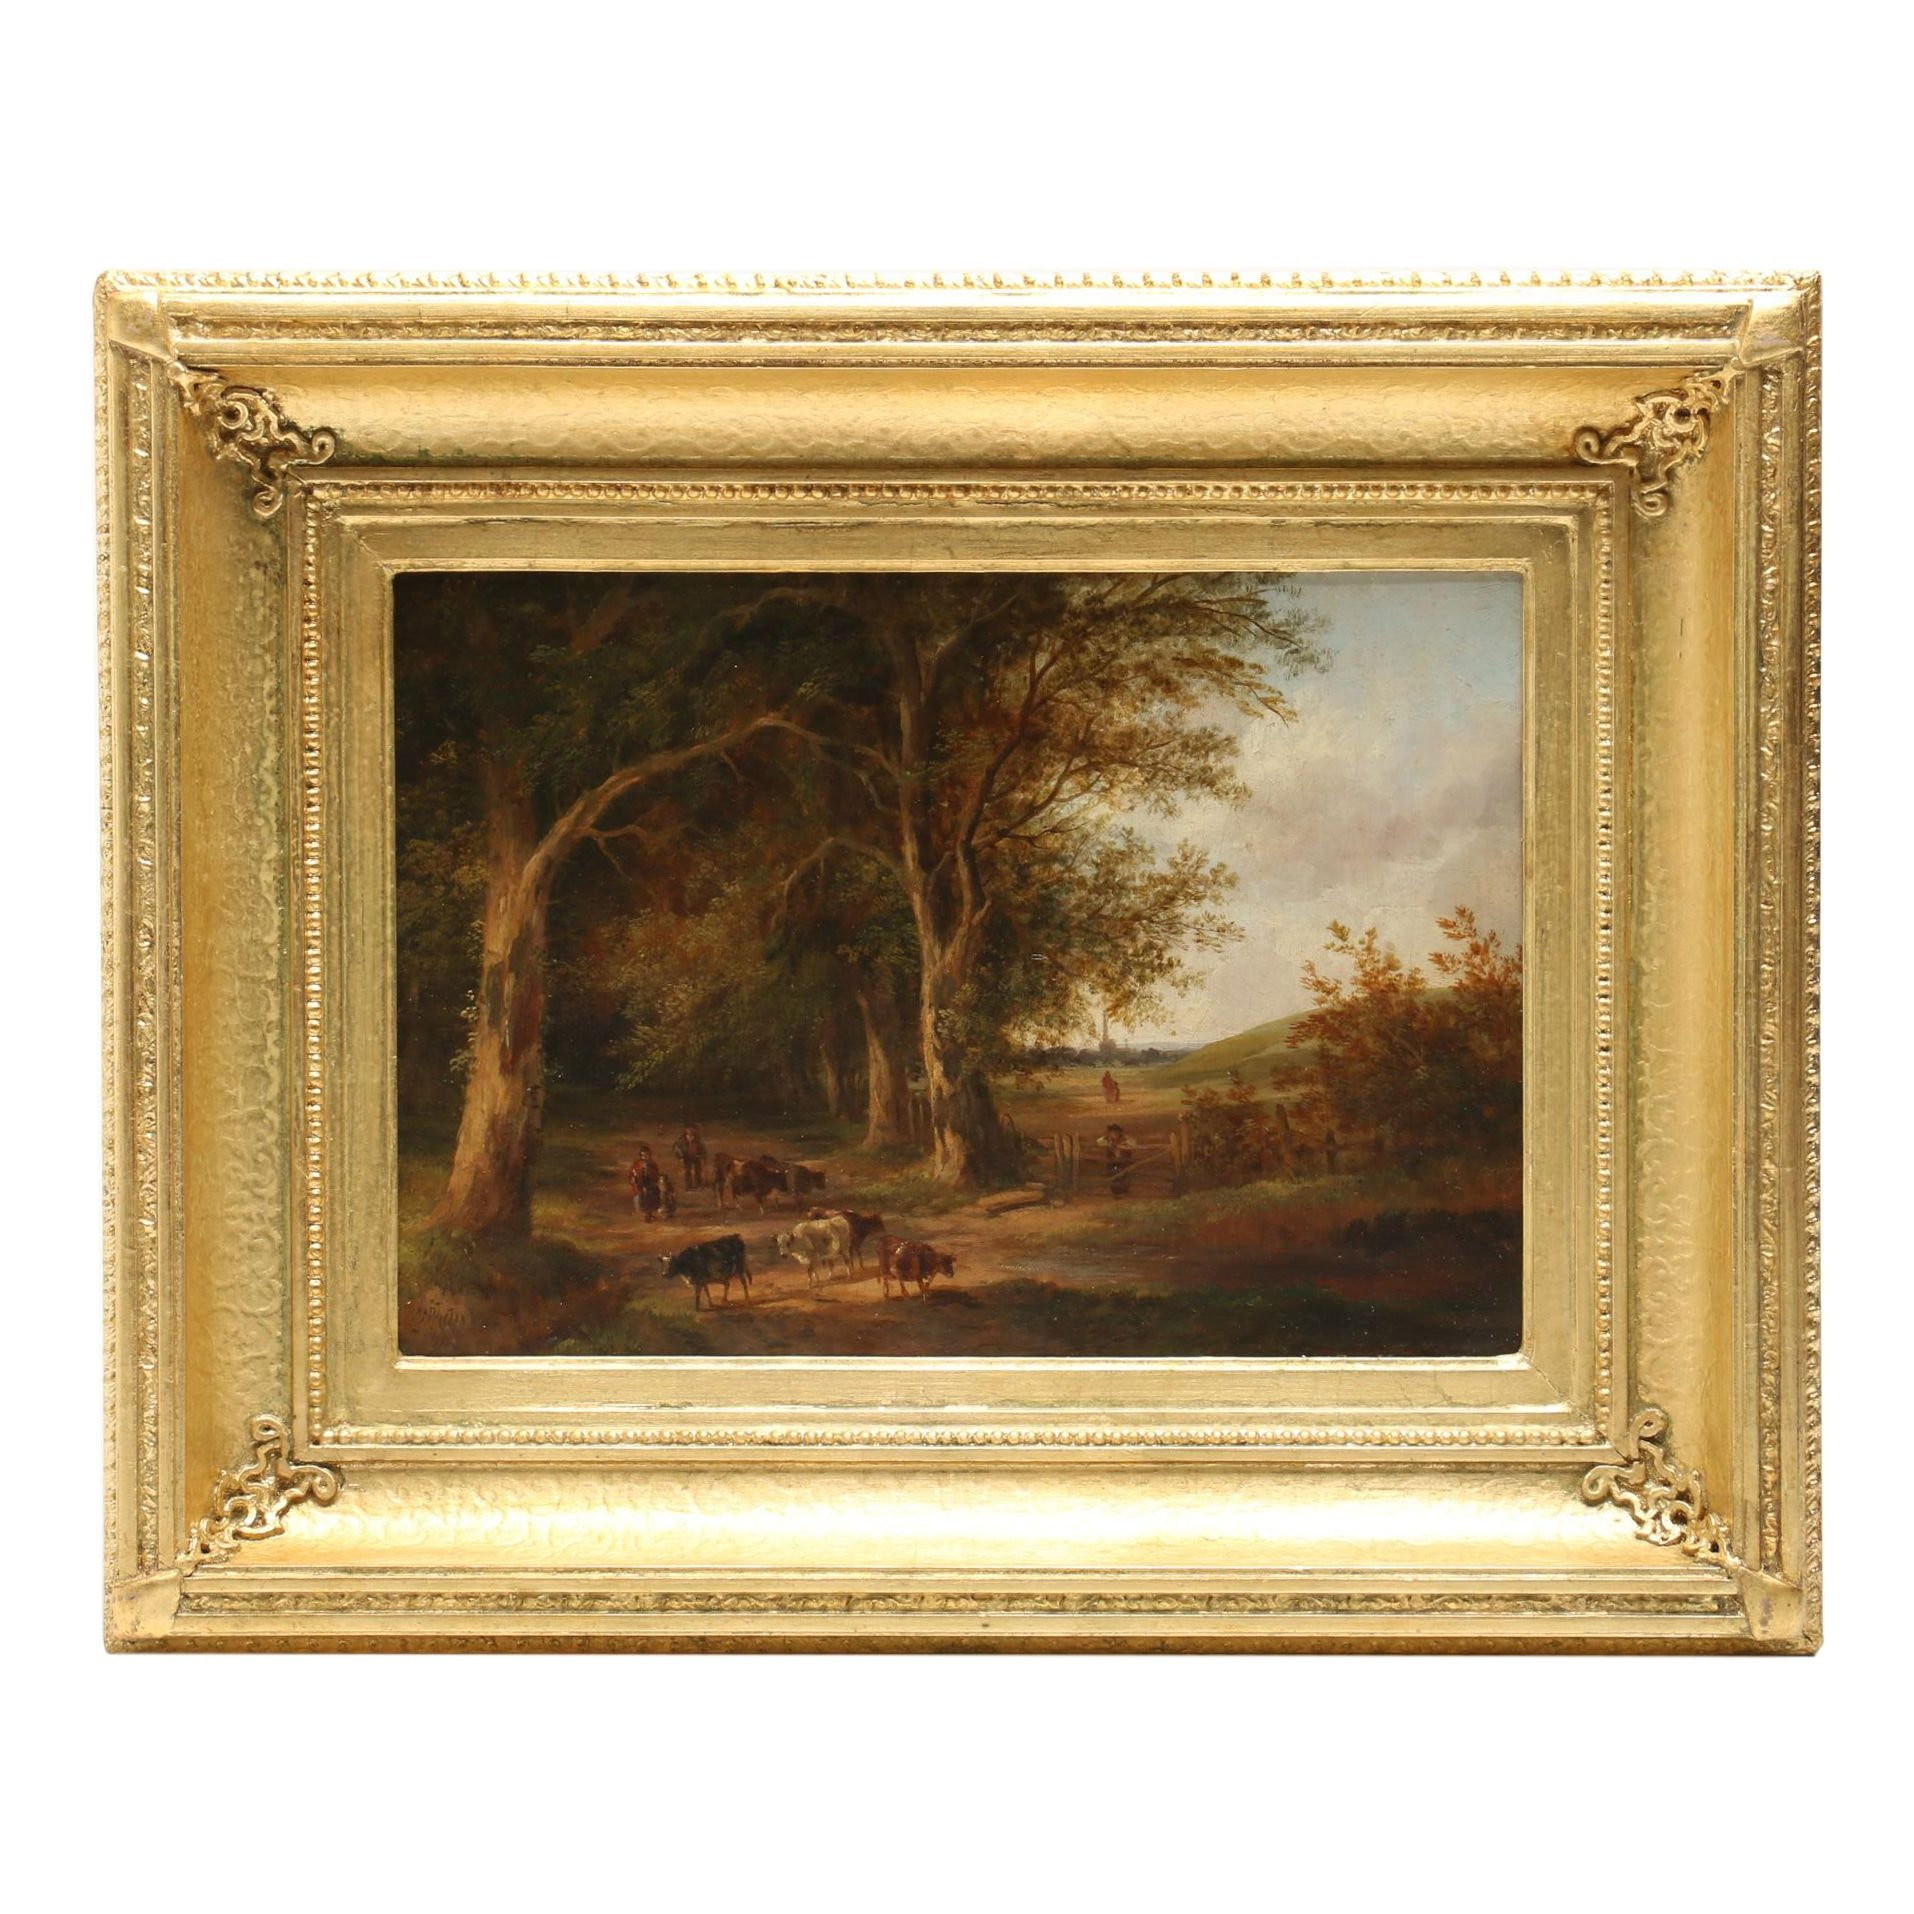 Late 19th-Century Luminist Pastoral Landscape Oil Painting